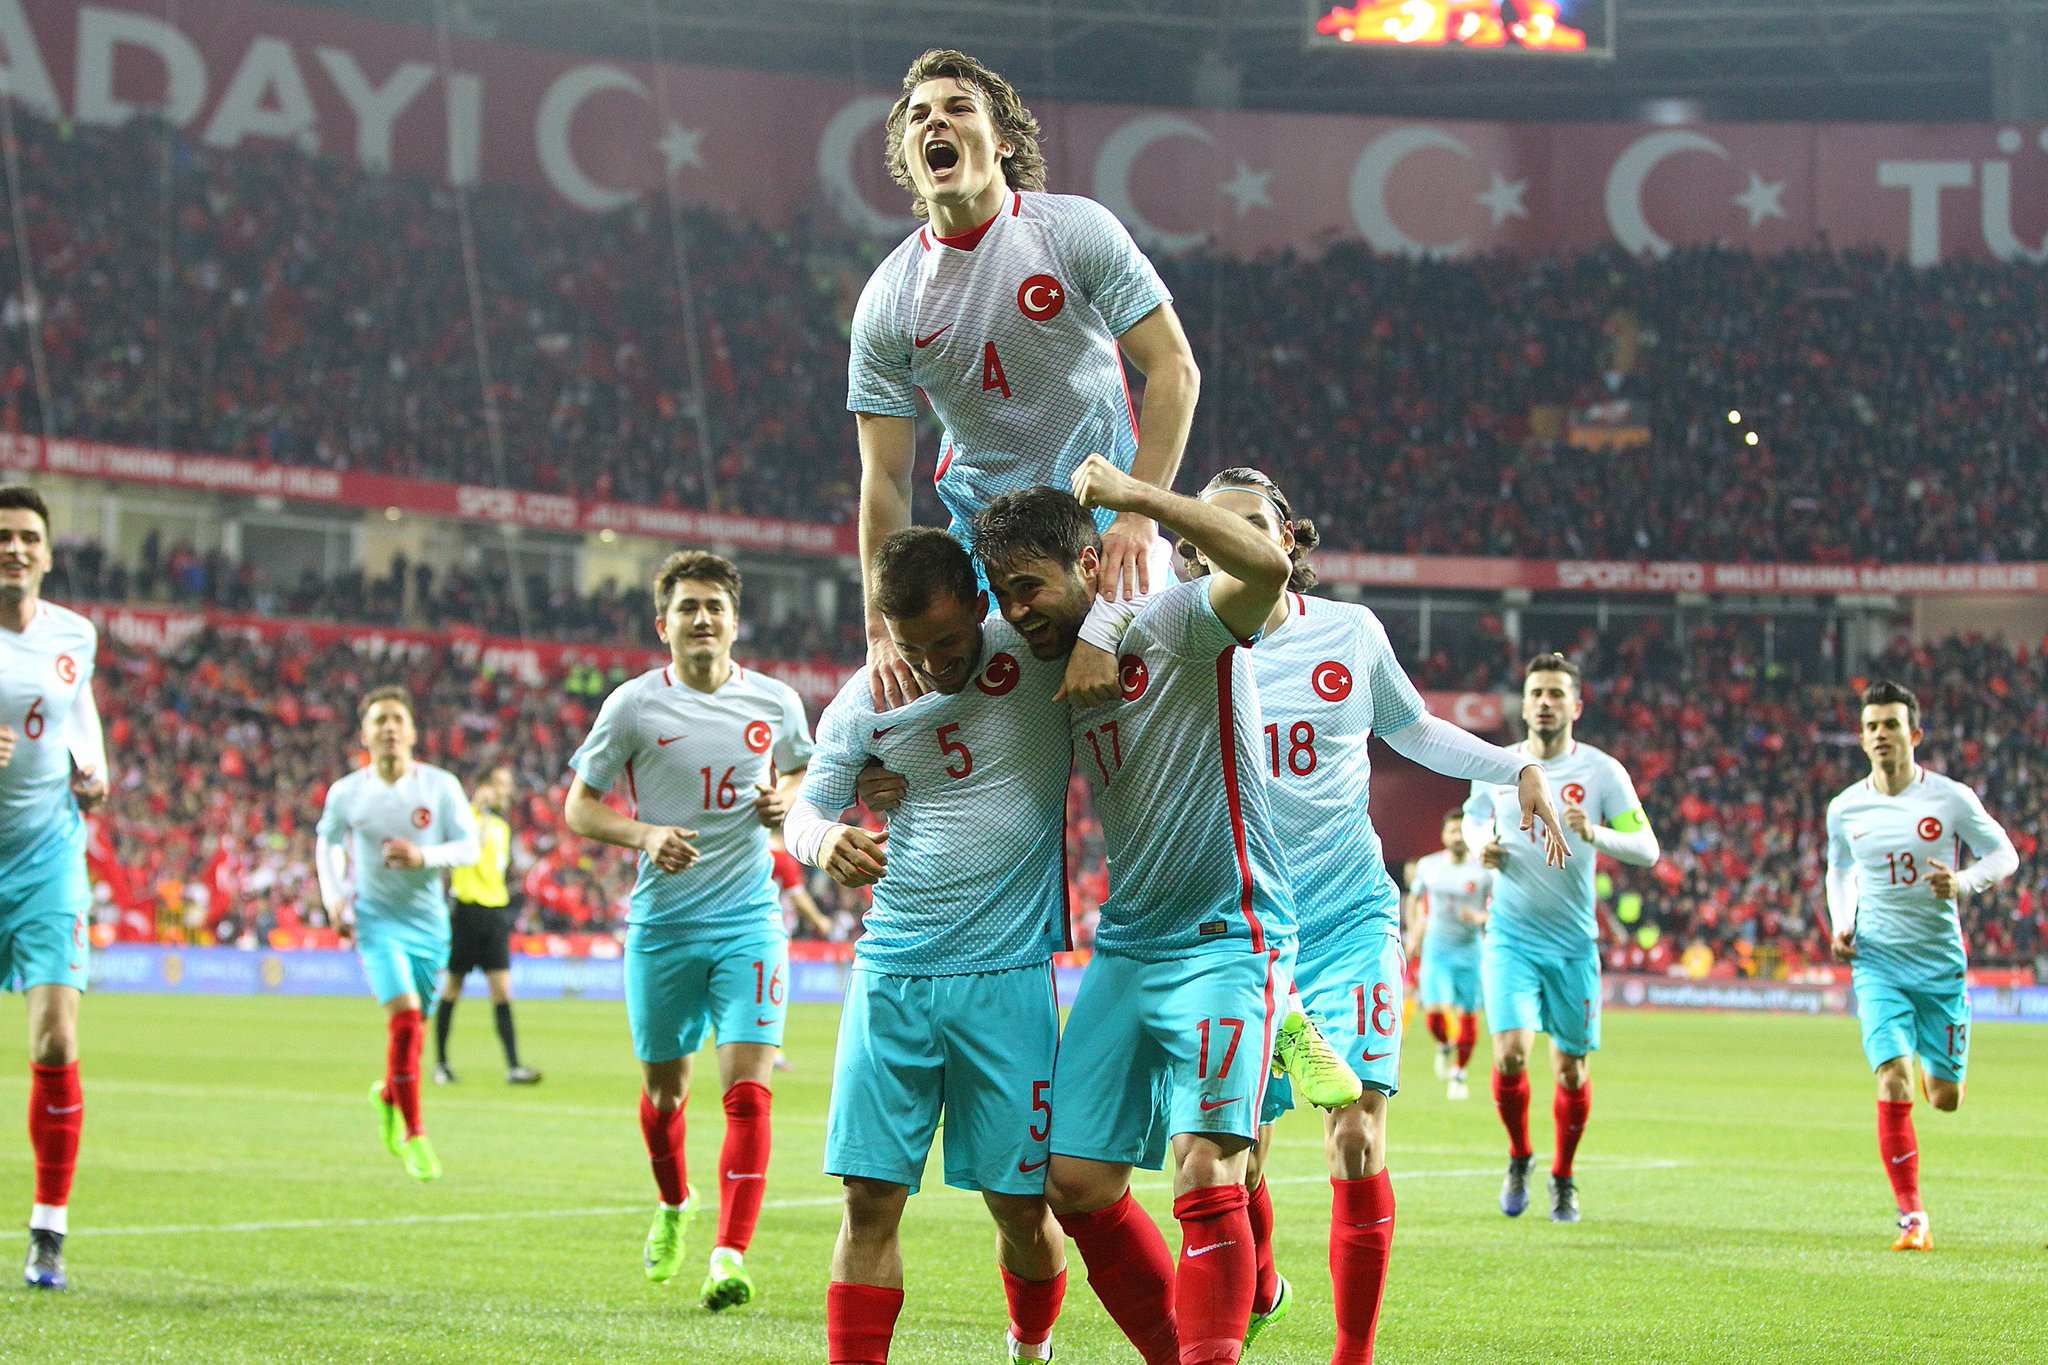 The Turkish players celebrate a goal against Moldova in March; photo: TFF